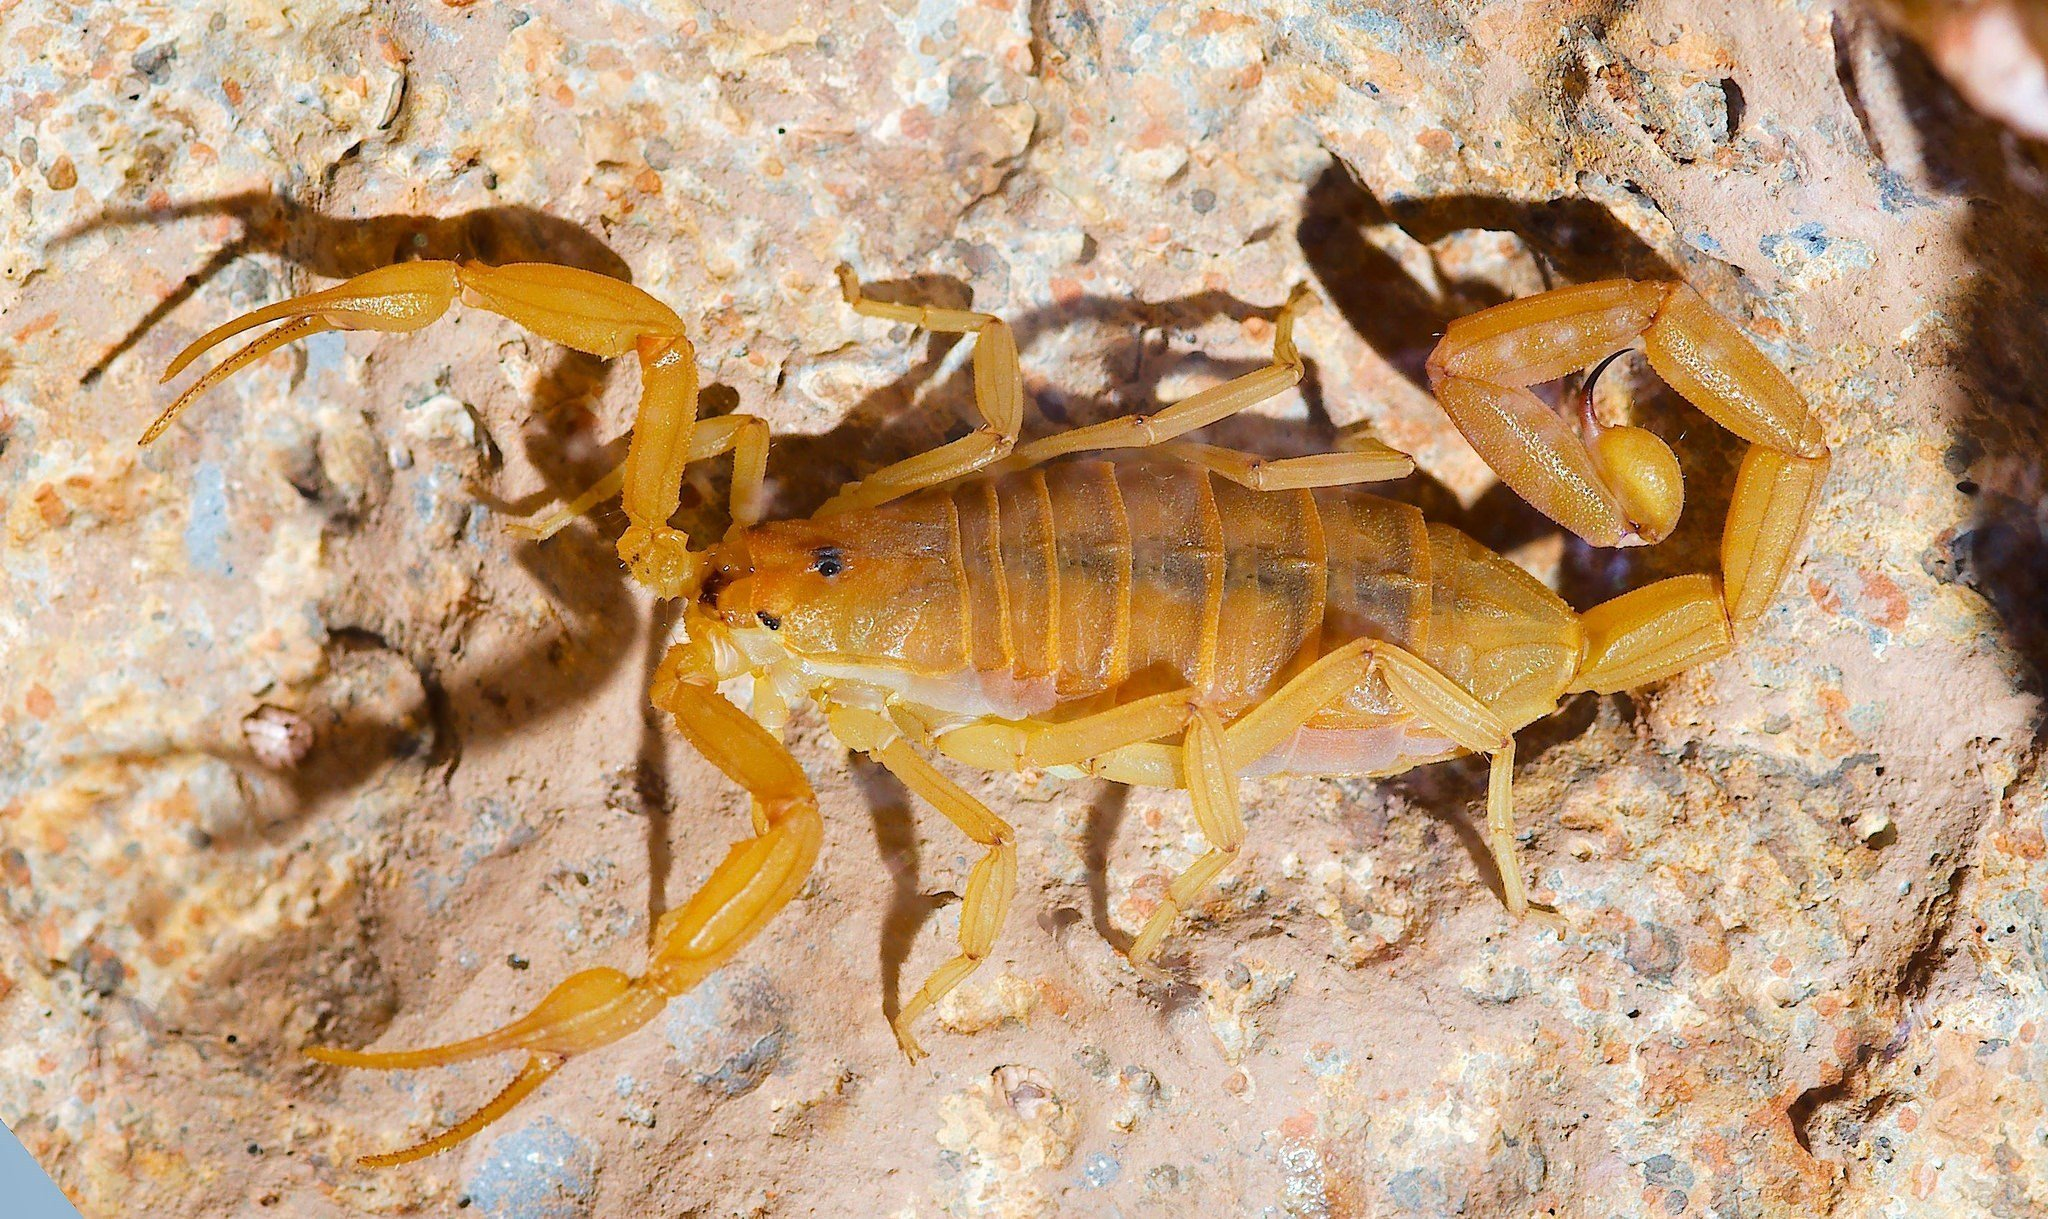 It's the time of year for scorpions and their other creepy friends to come out and play.